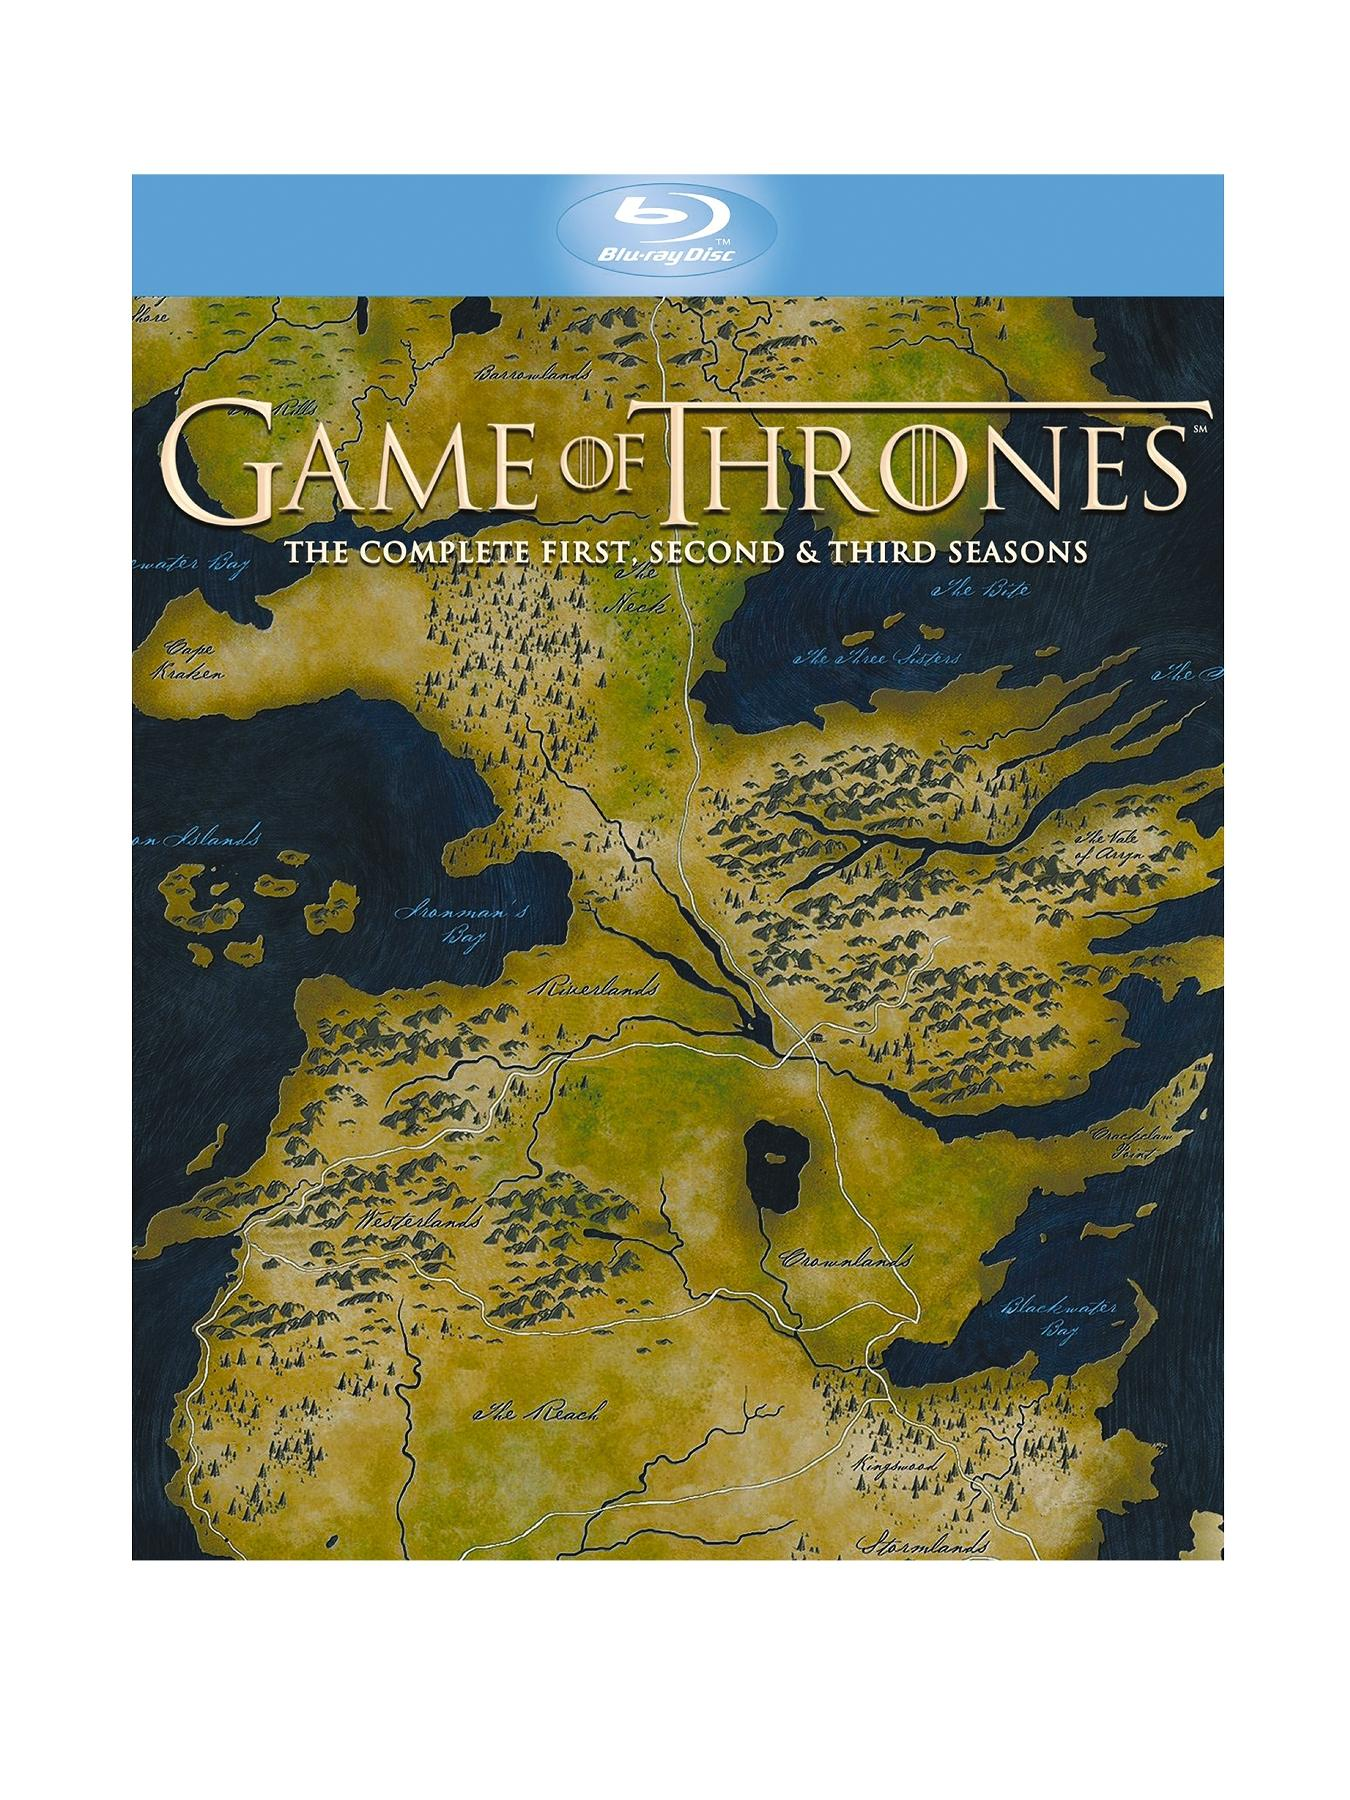 Game Of Thrones - Seasons 1-3 Blu-ray